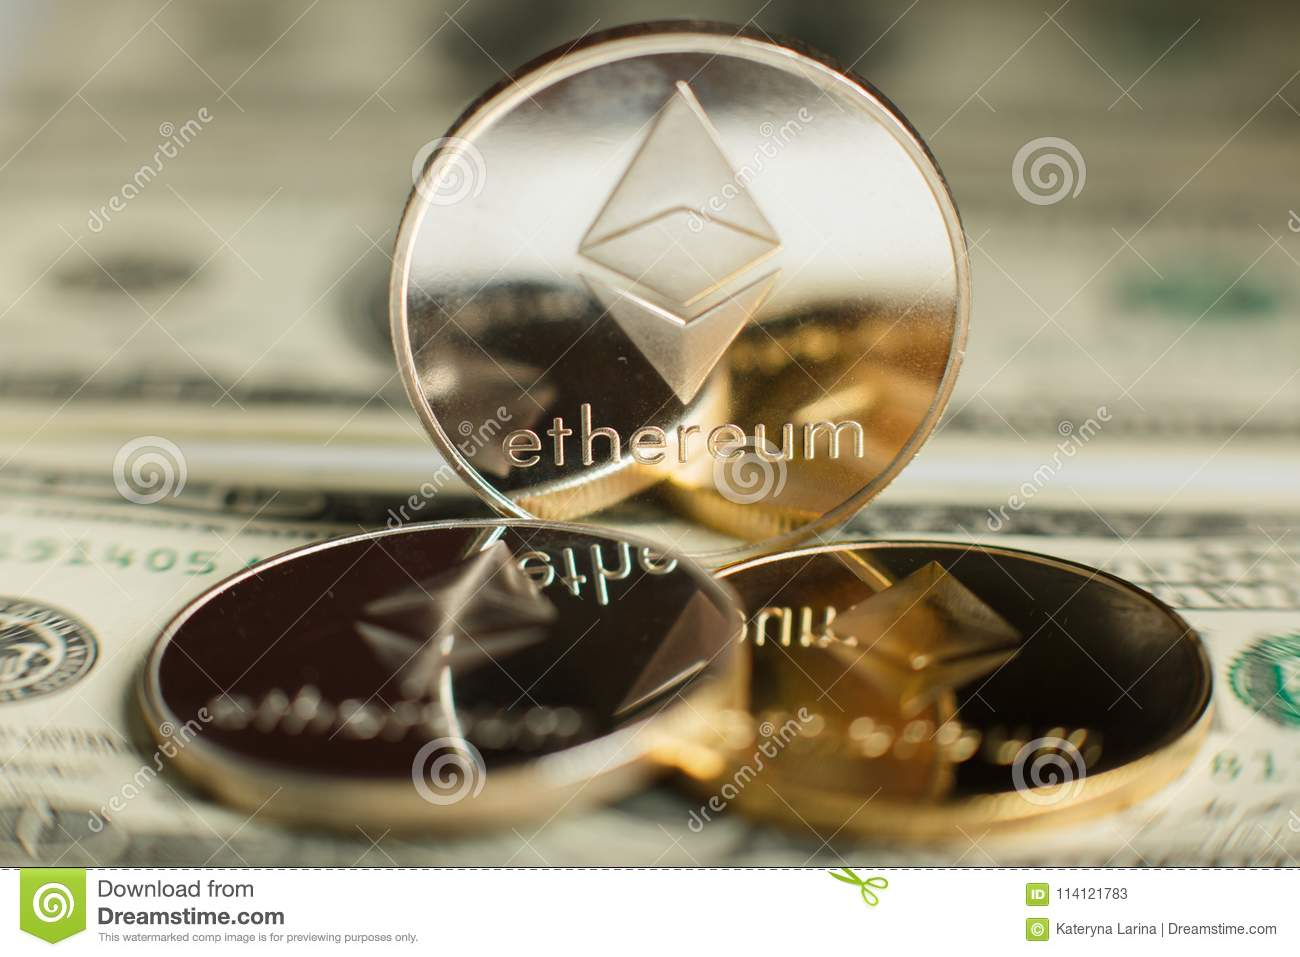 Ethereum moneta